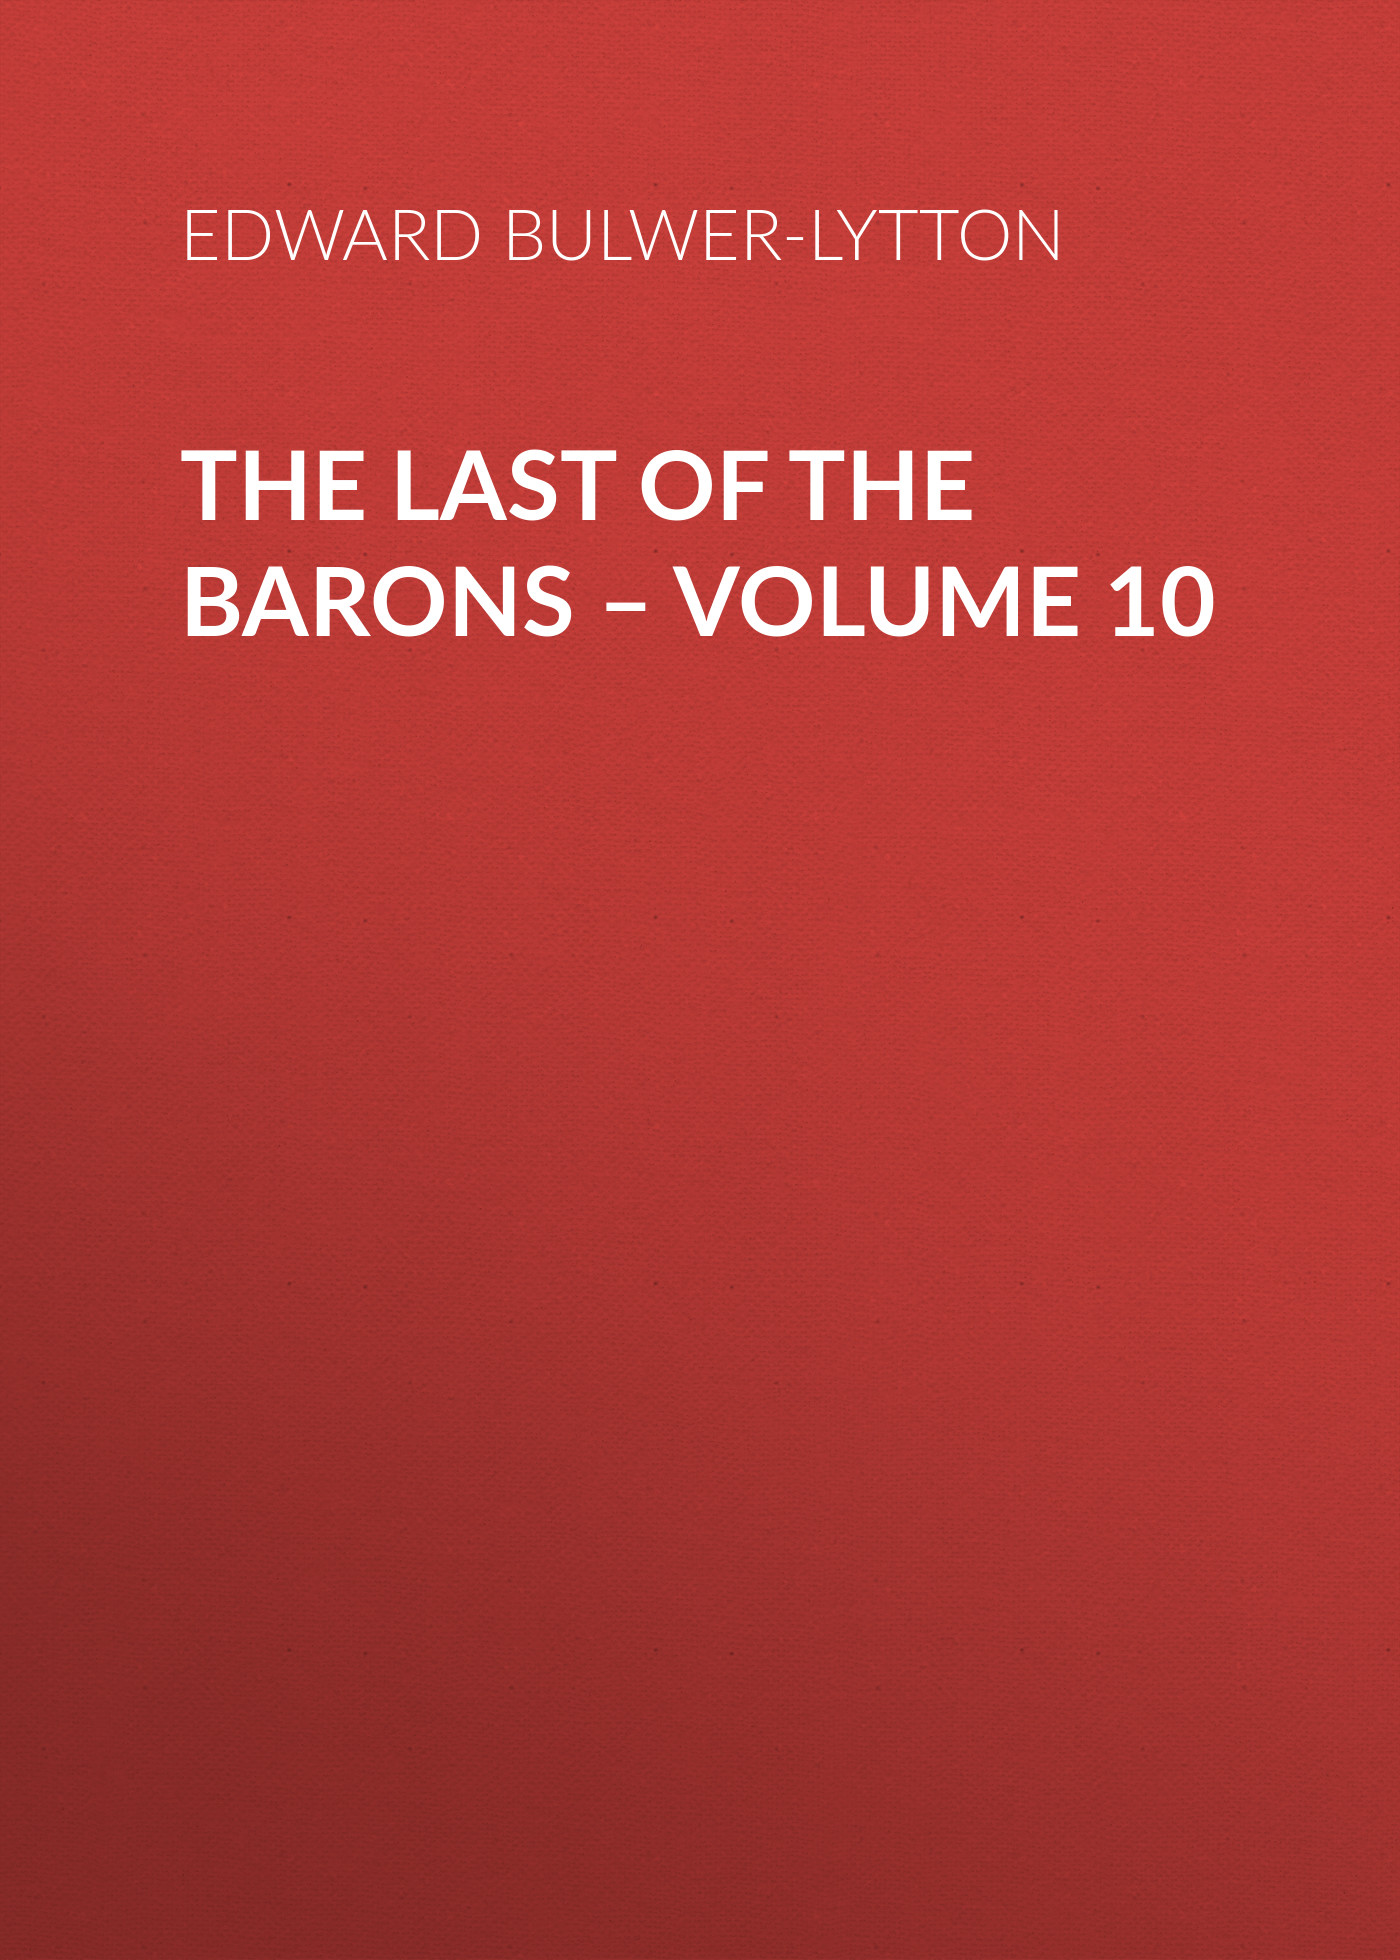 The Last of the Barons – Volume 10